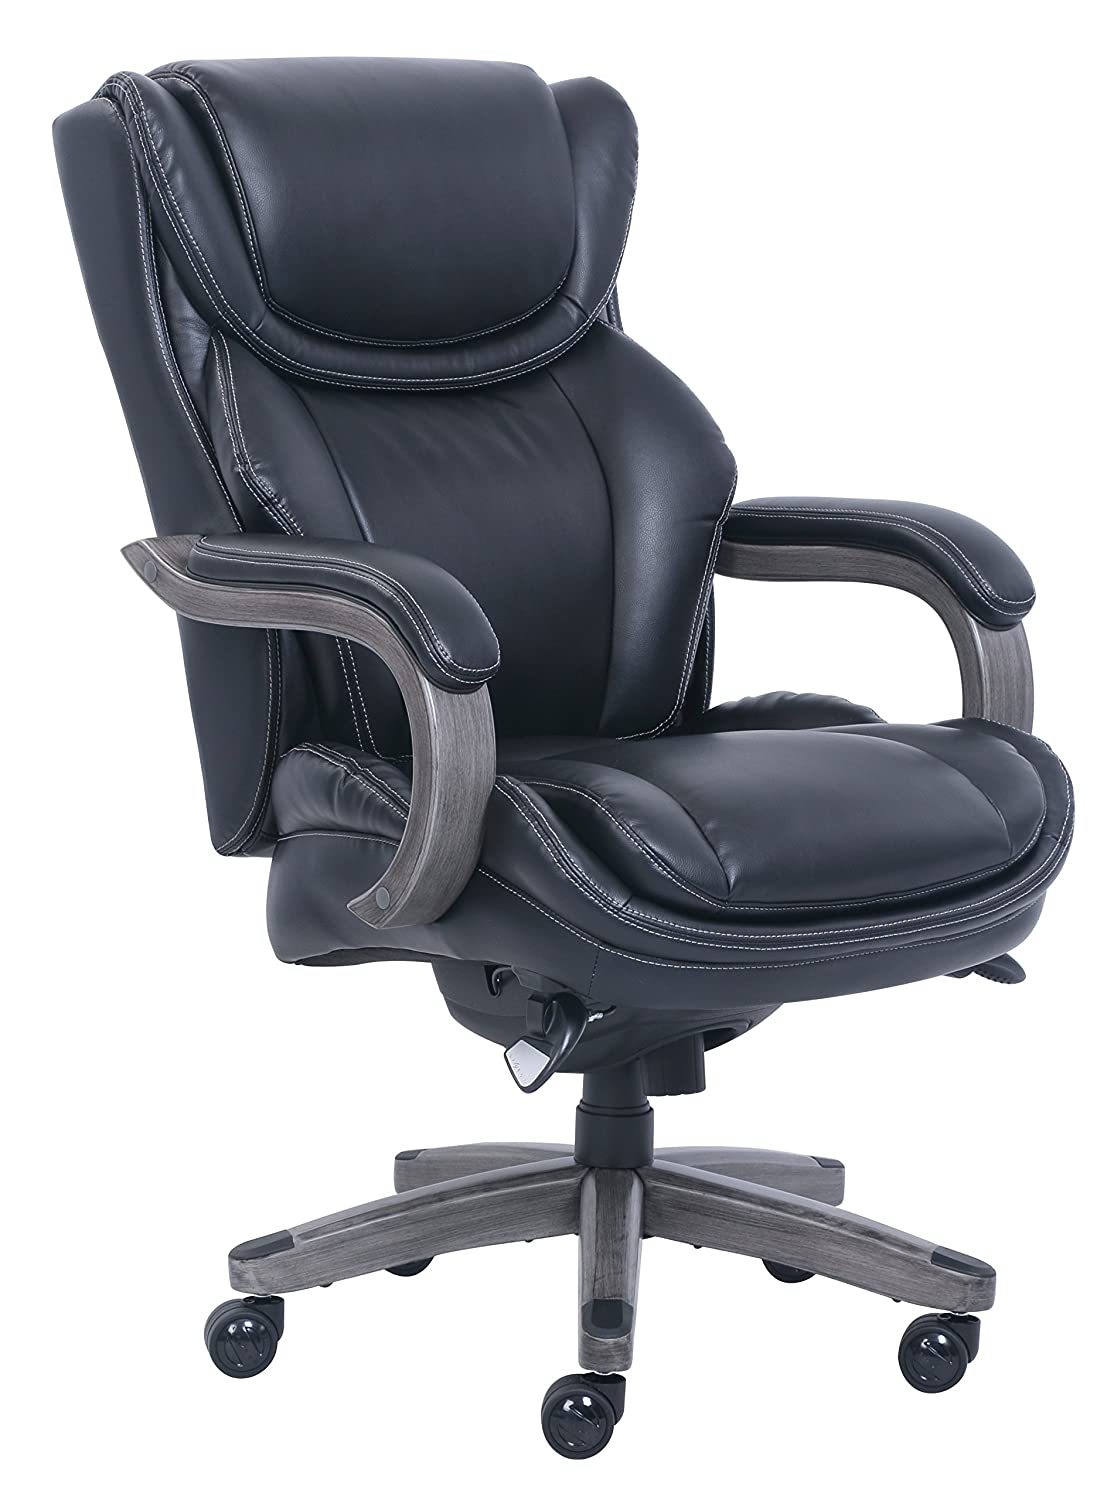 LaZBoyBig & Tall Executive Chair Bonded Leather, Black